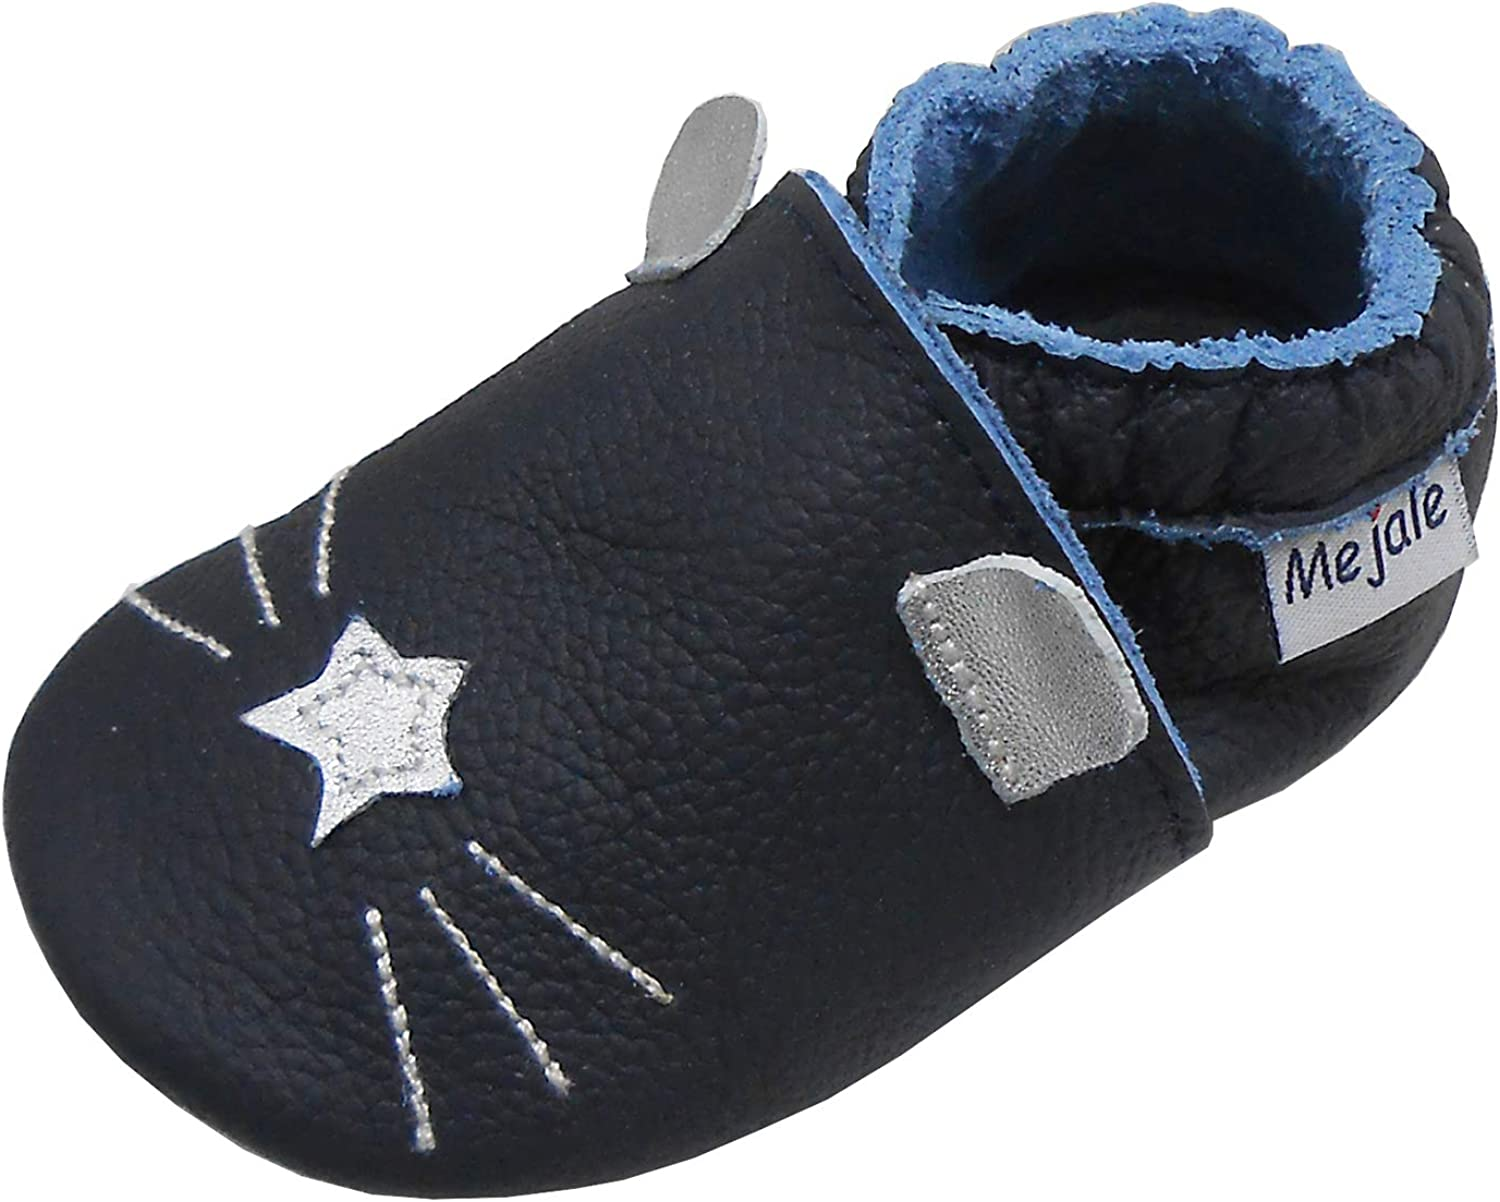 Mejale Baby Leather Shoes Infant Crawling Toddler Moccasins Brown White Purple Navy Cute Boy Girl Slippers